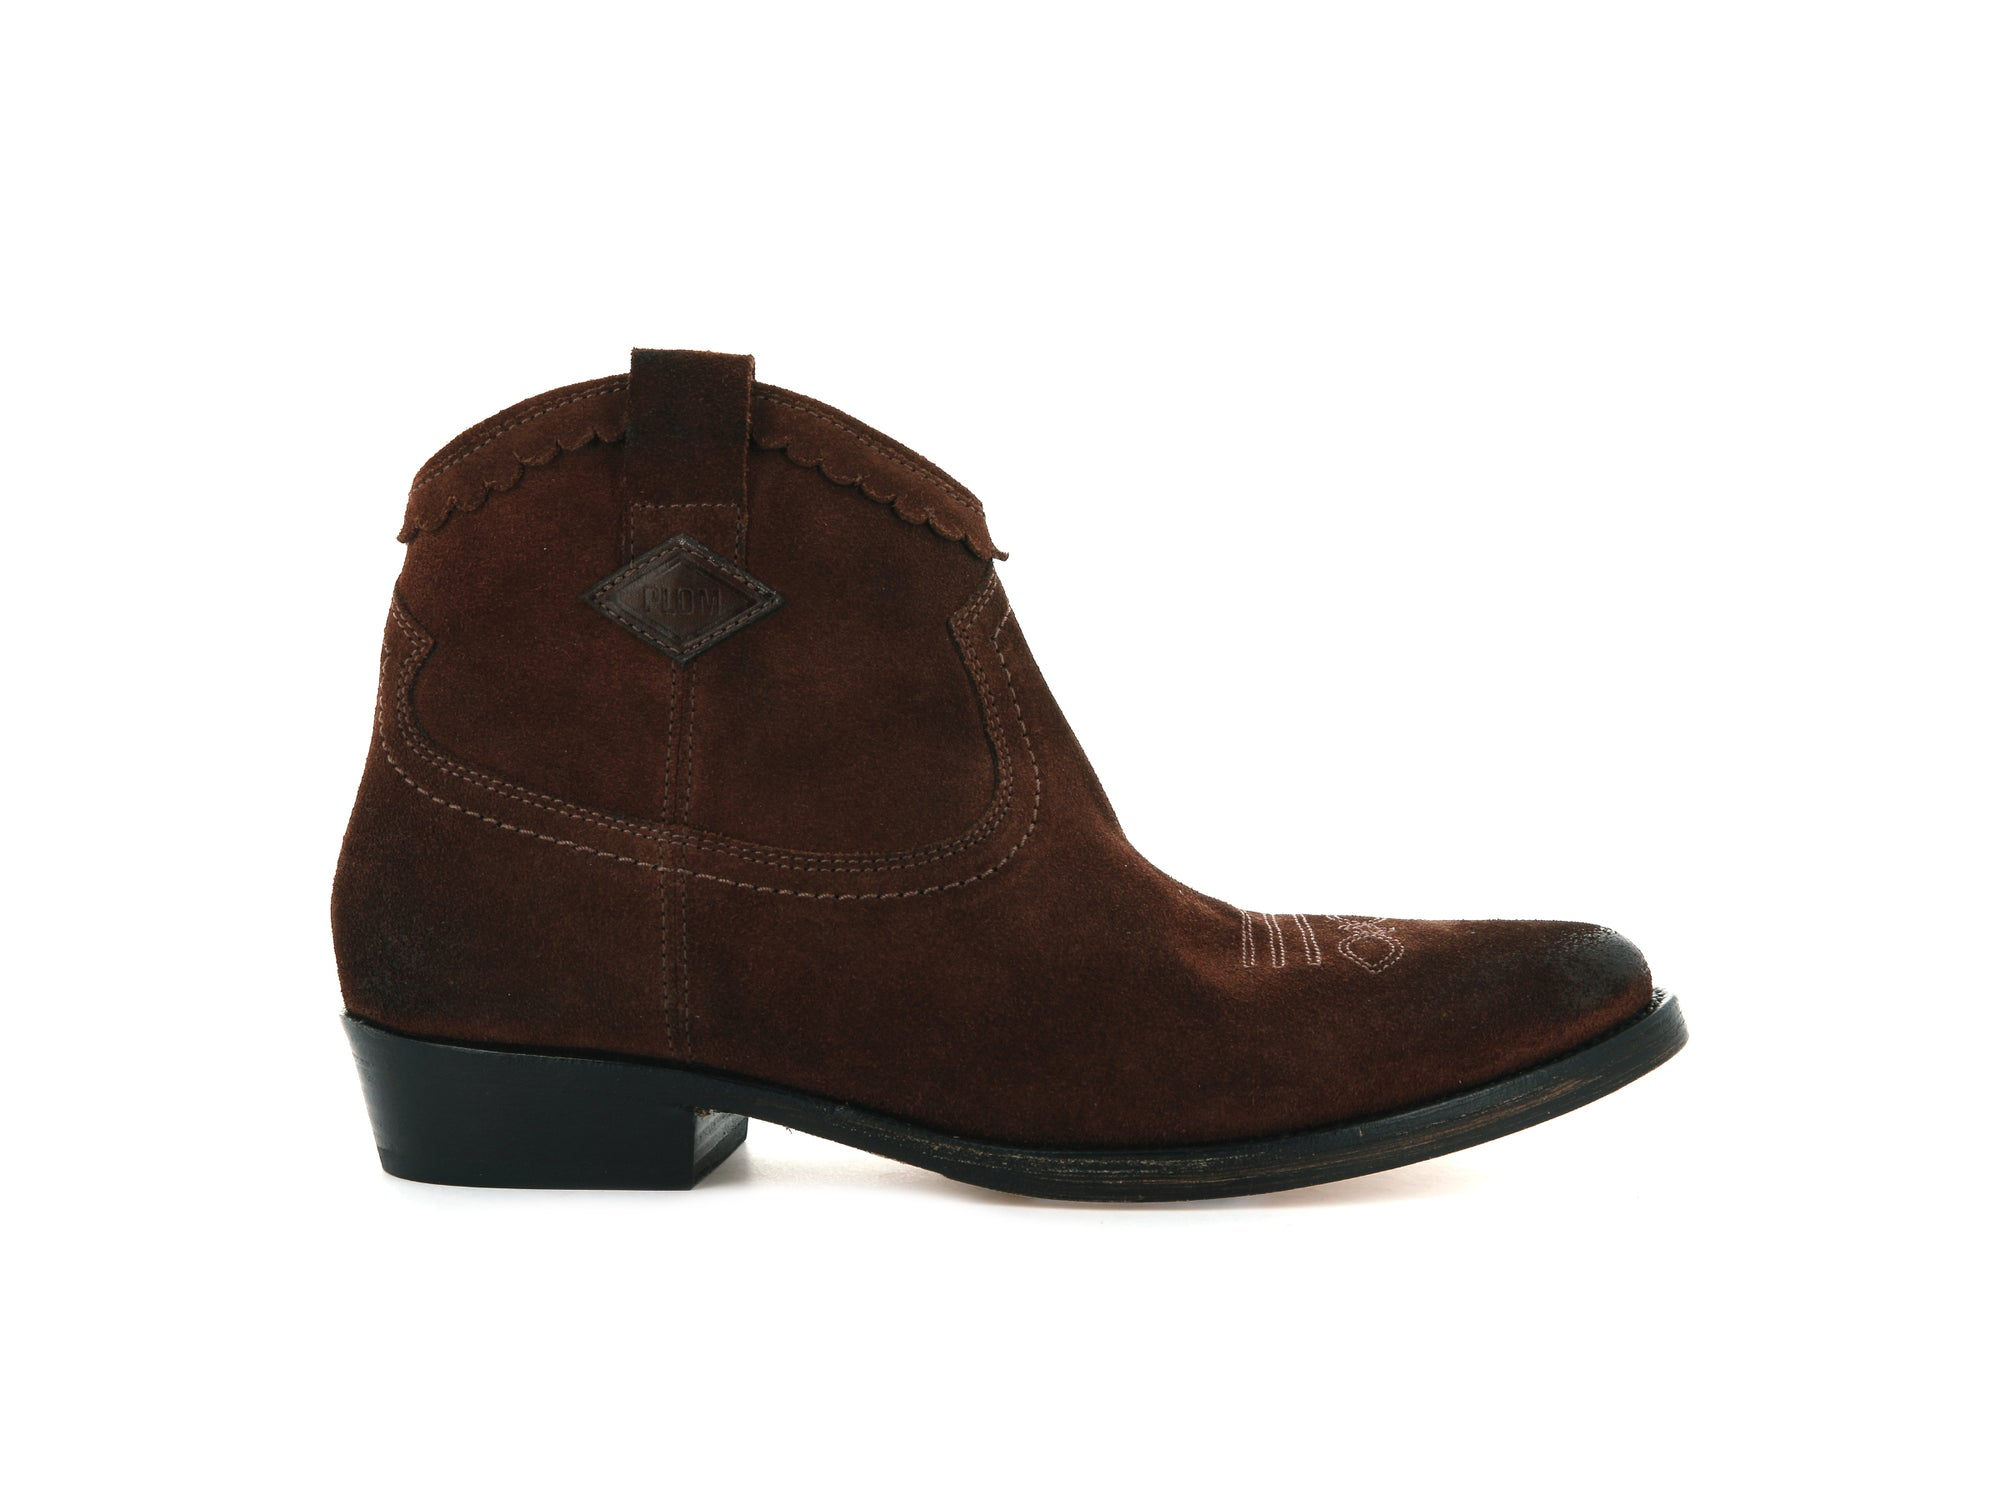 76325_S26 | Bottines femme WALKYRIE SUD | MUSCAT